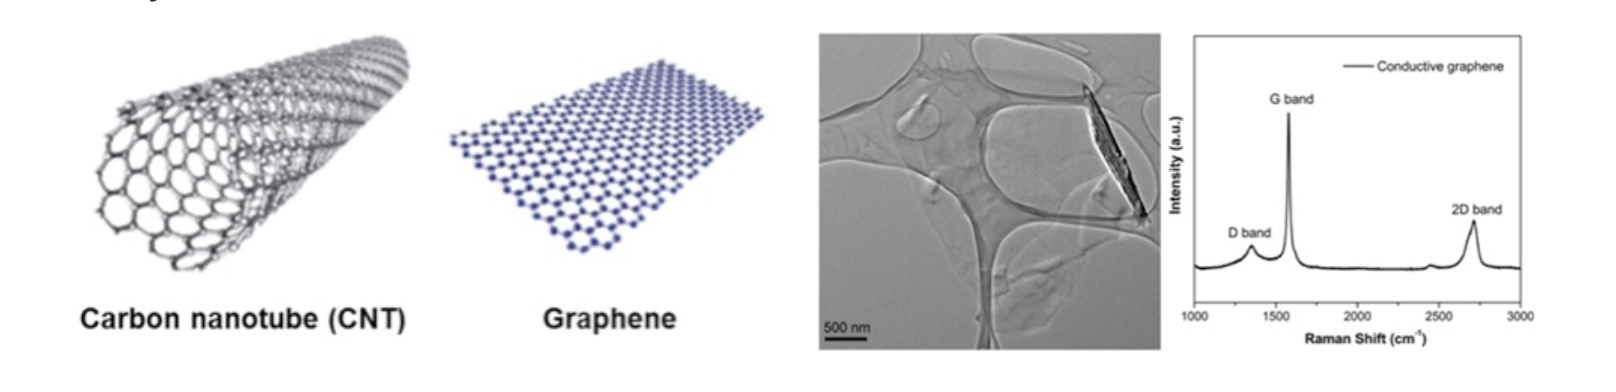 Graphene-and-Carbon-Nanotube-Launched-by-Creative-Diagnostics-for-Bio-applications